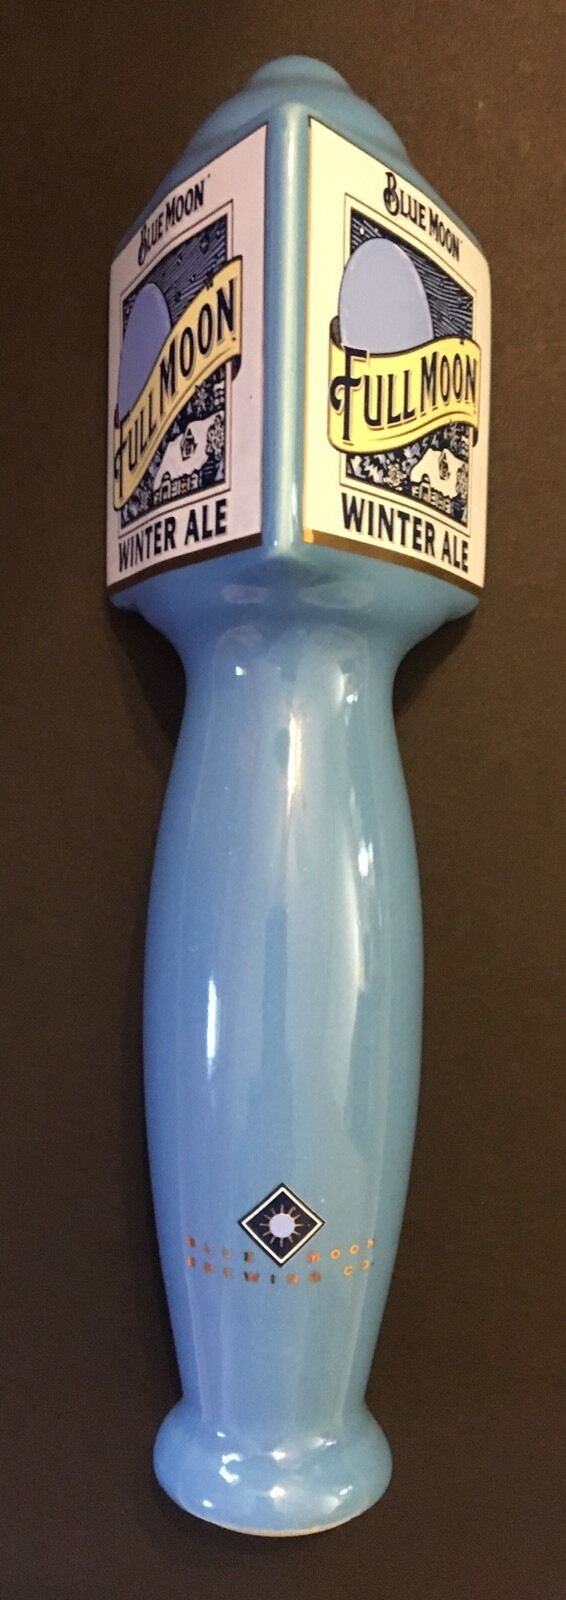 Beer Tap Handles, Knobs - Blue Moon Brewing Co. Full Moon Winter Ale ...